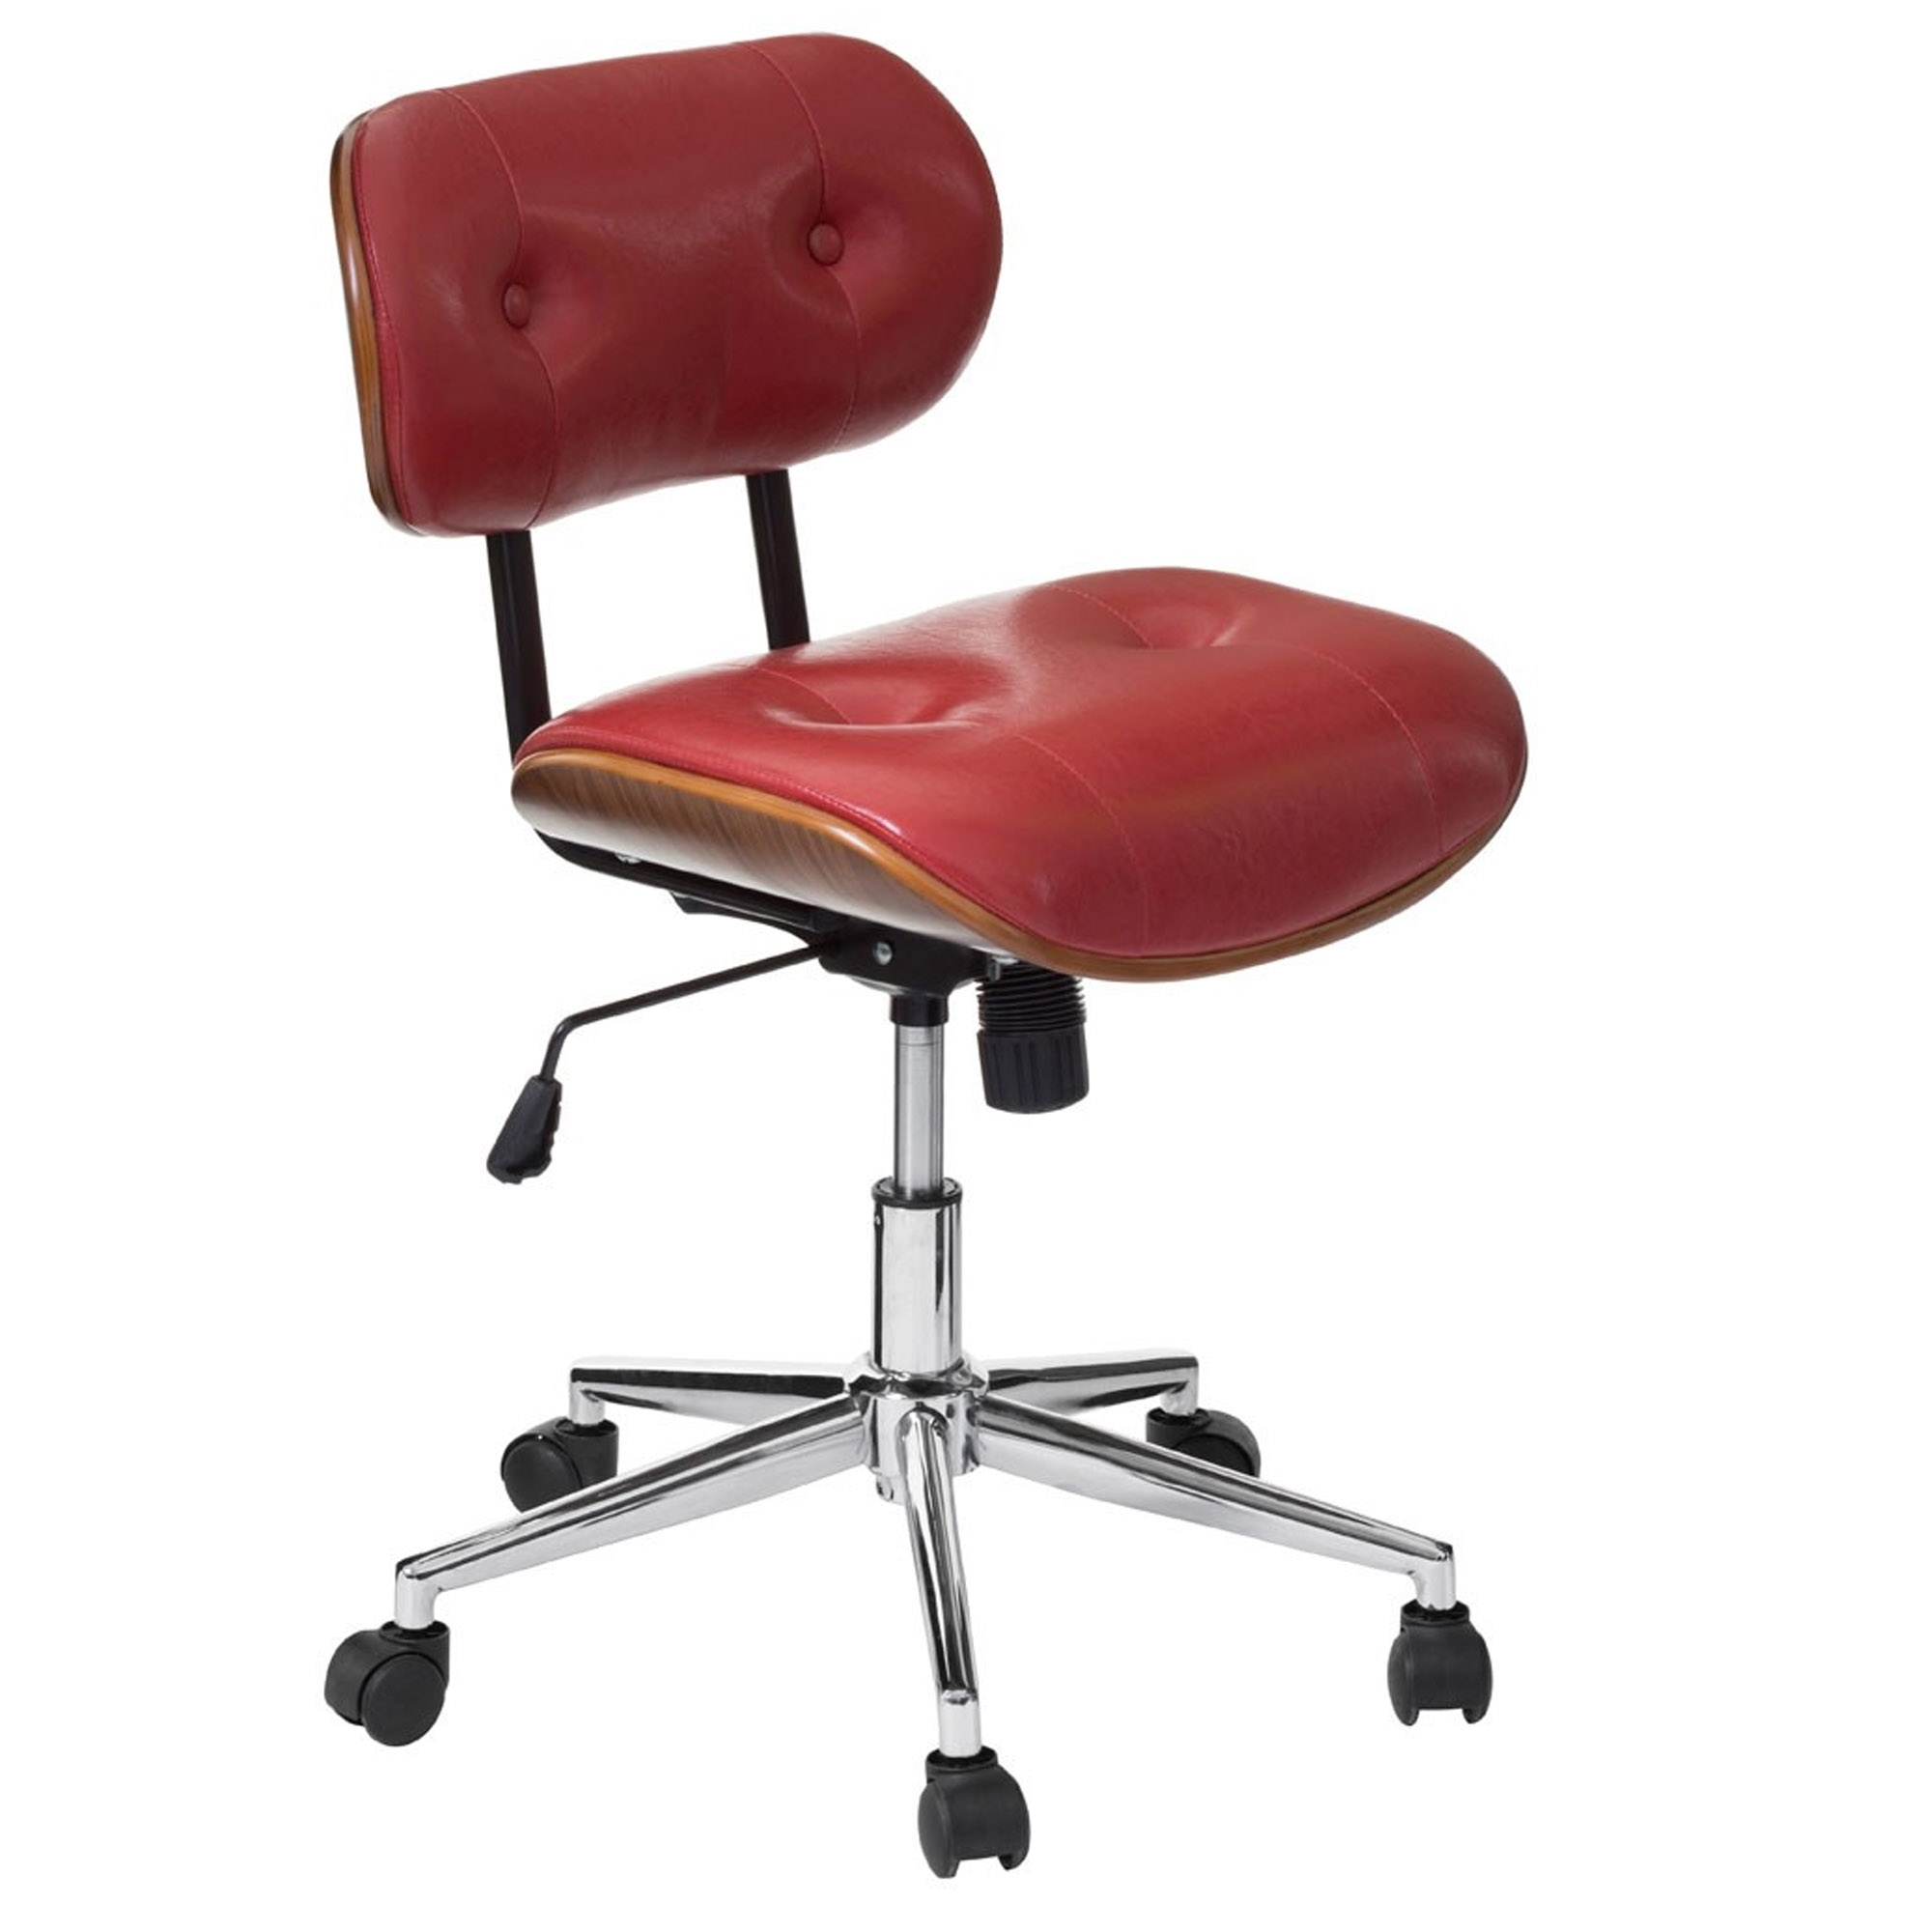 executive products collection back chair leather high office premium bikey red